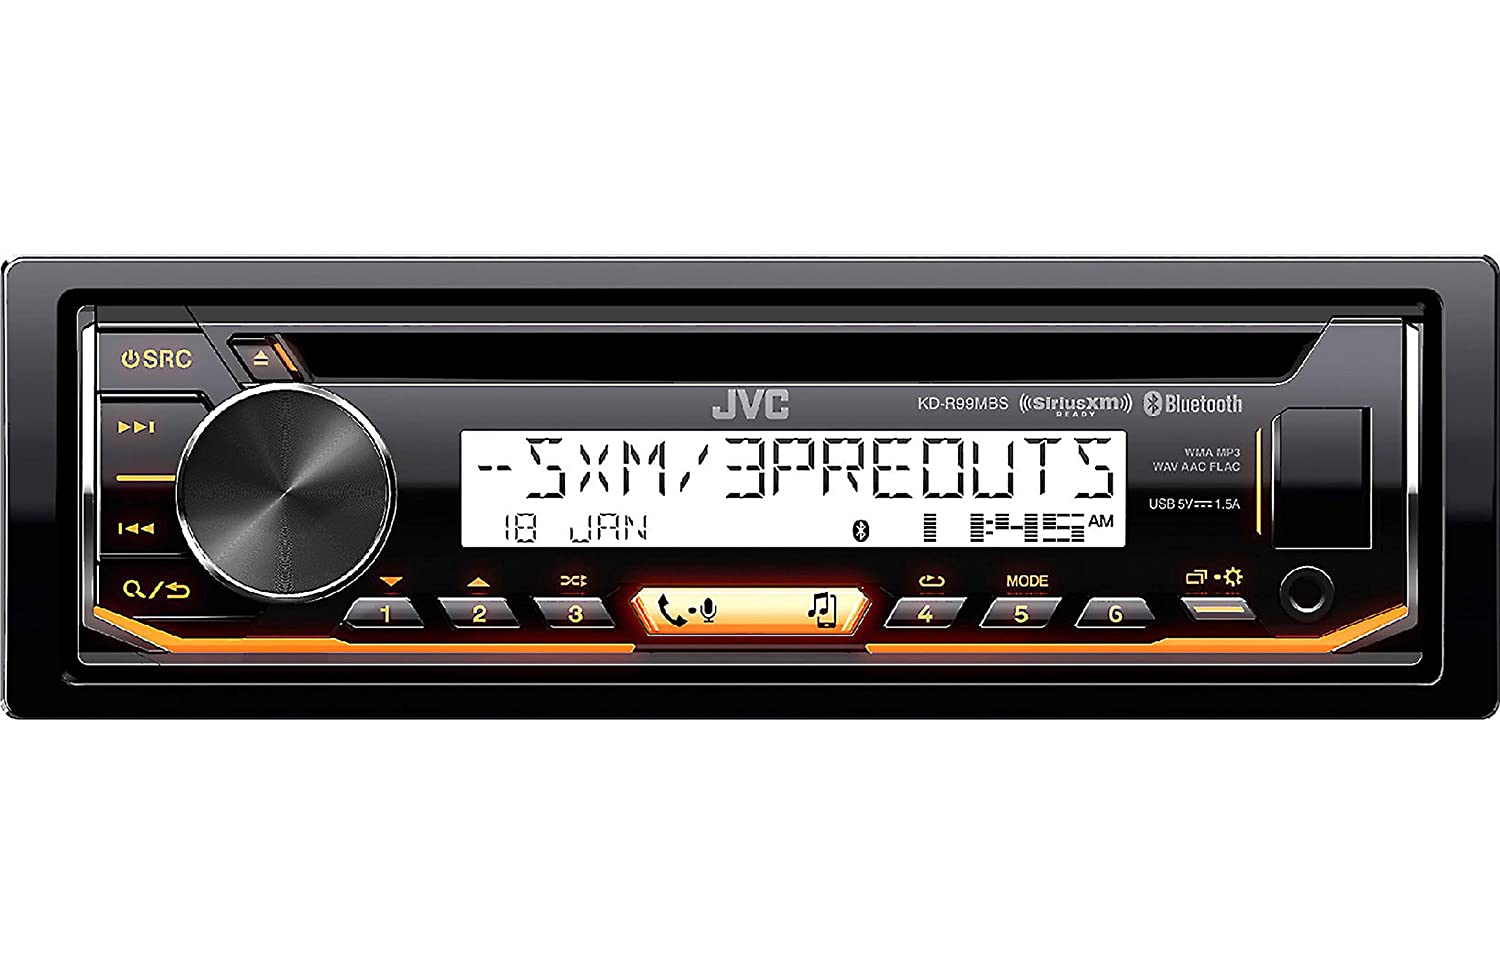 JVC Marine Boat Yacht Radio Stereo CD Player Receiver Bundle Combo 6.5 2-Way Coaxial Speakers JVC Pyle Enrock KDR97MBS CSDR6201MW EM16G50FT-OFC EKMR1